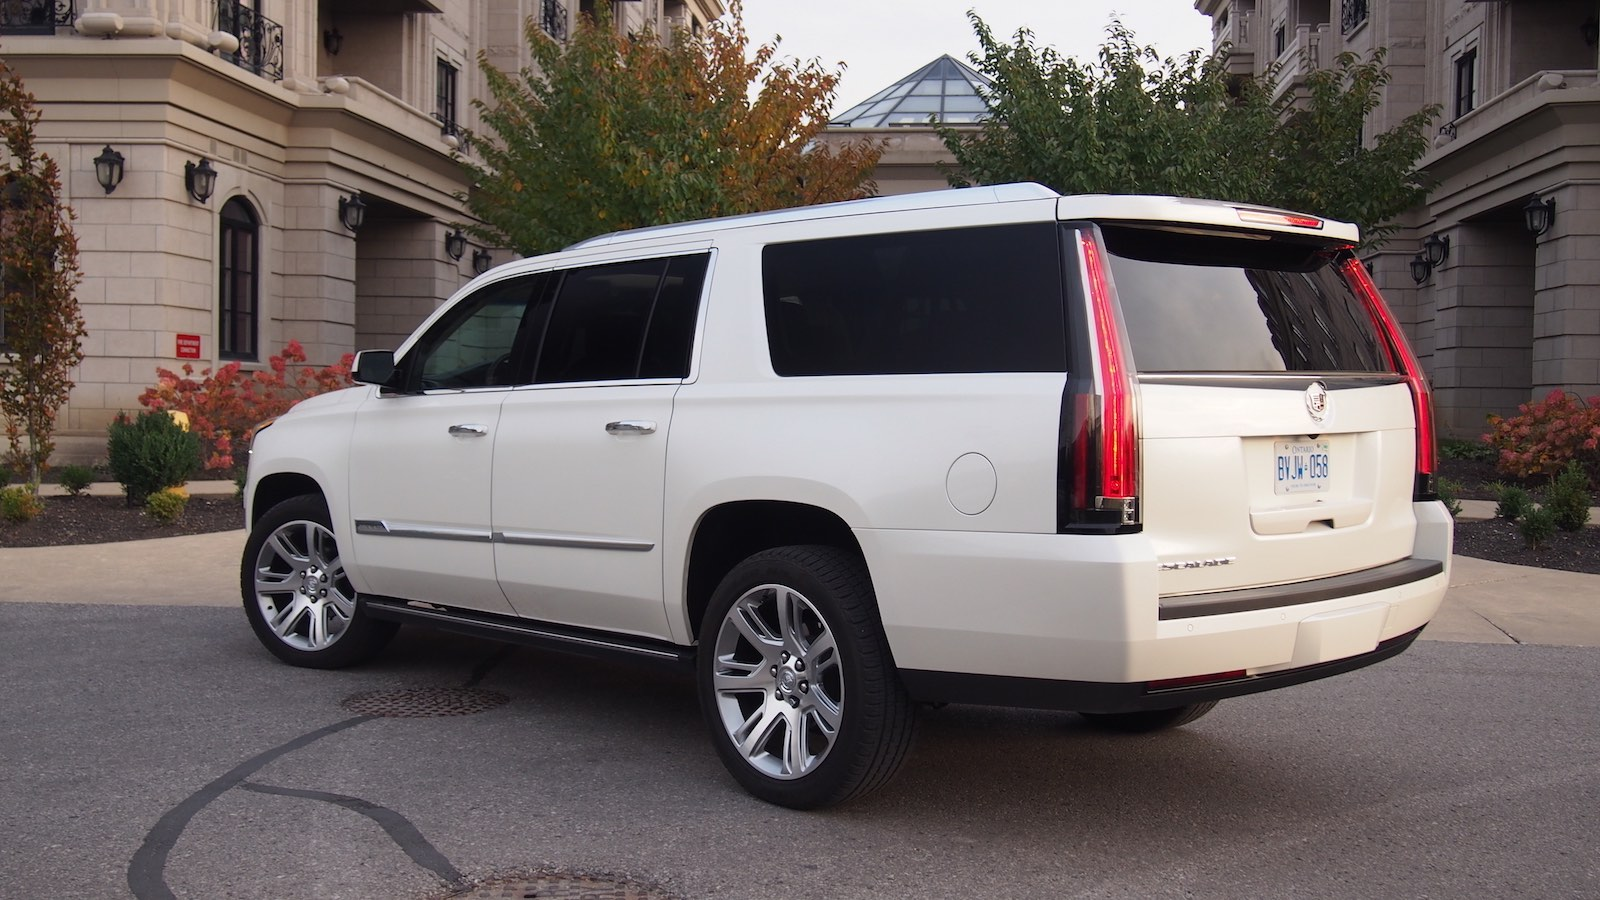 2014 cadillac escalade white exterior picture wallpaper cadillac apps directories